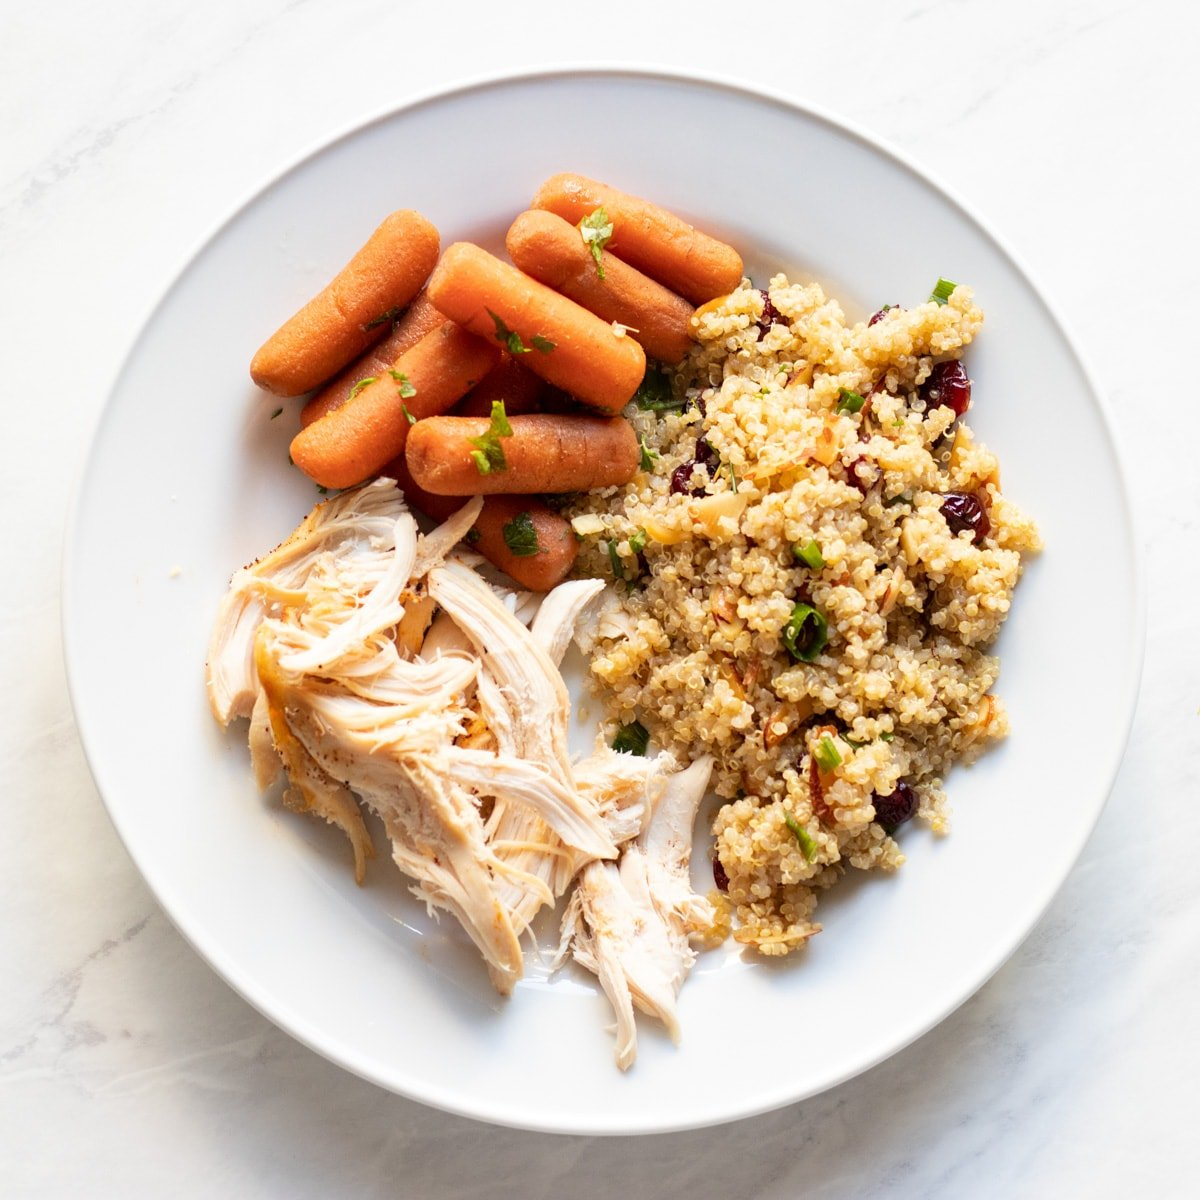 A plate with roasted chicken, quinoa salad with cranberries and almonds, and cooked carrots.